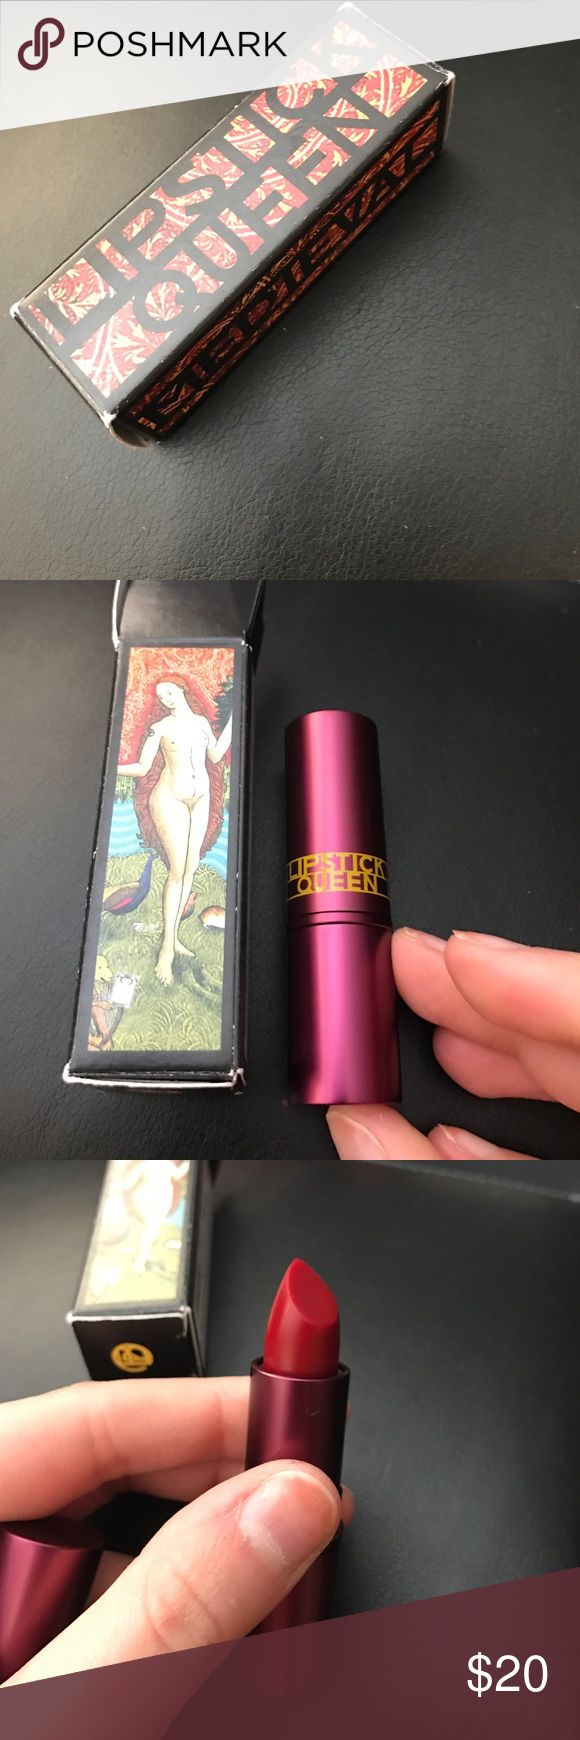 Lipstick queen medieval new in box Brand new never used! Clearing out my unused collection!  Send me your best offer! lipstick queen Makeup Lipstick